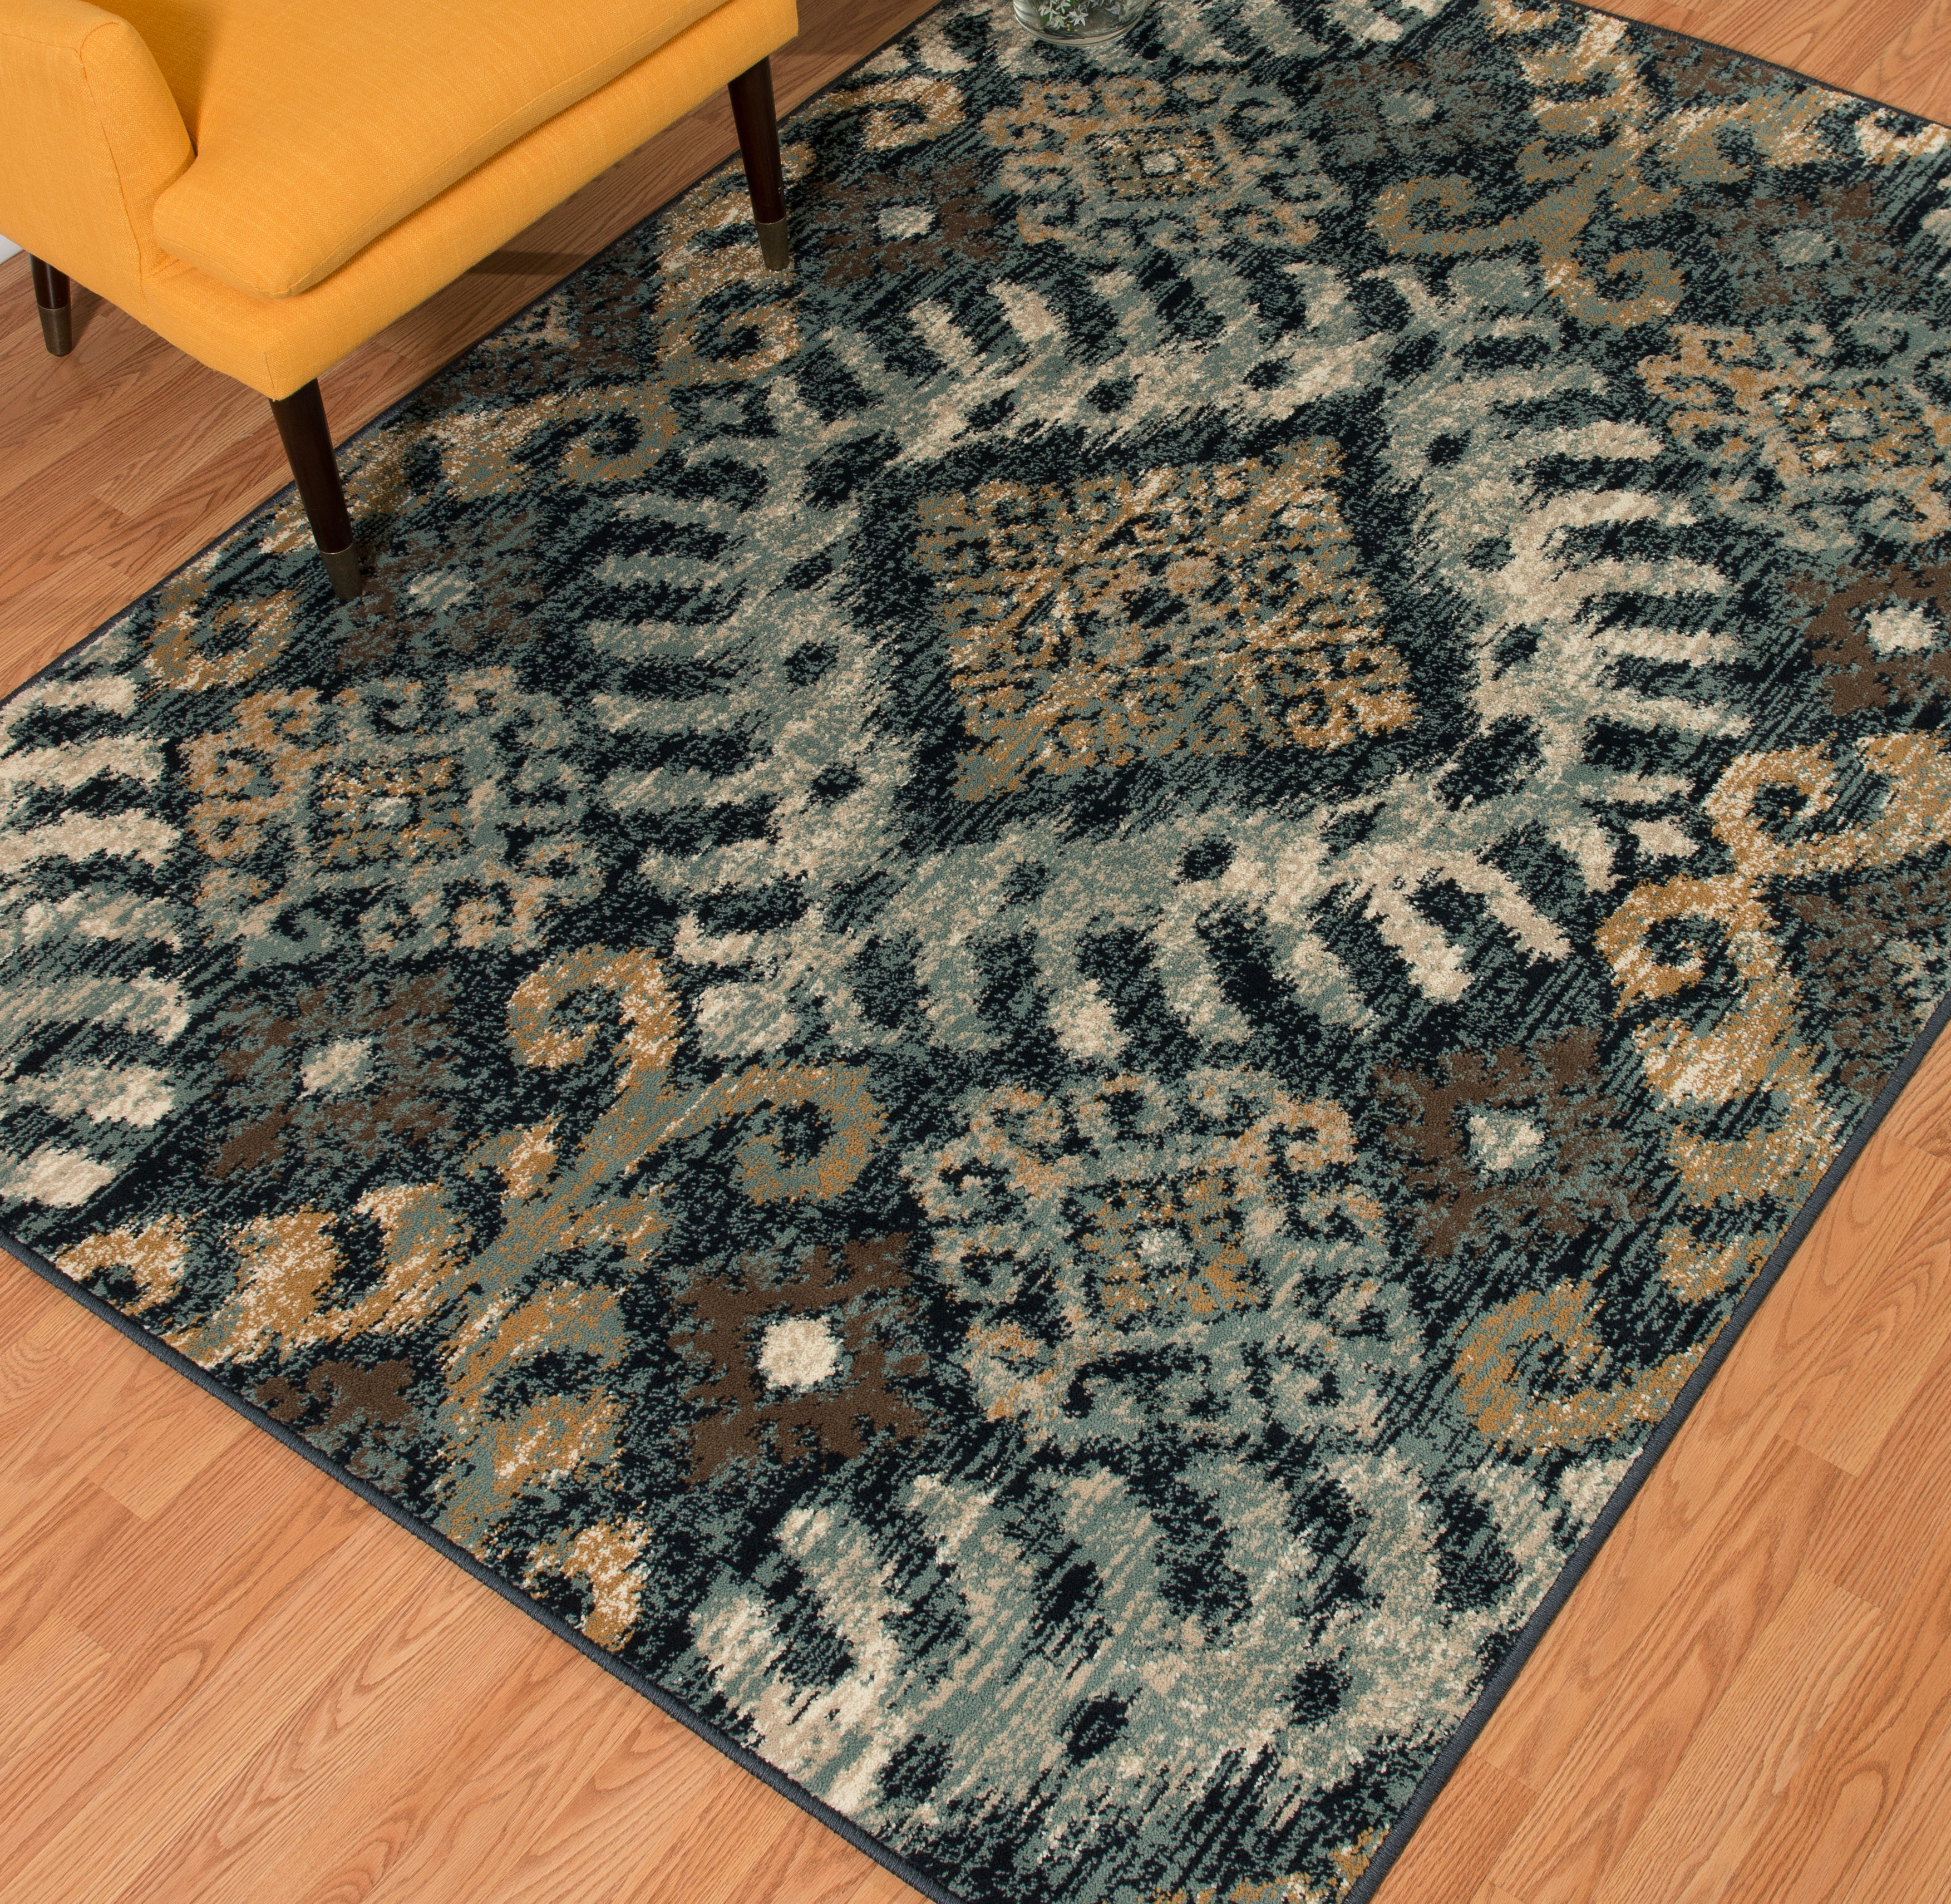 United Weavers Amarna Verazanno Distressed Navy Woven Olefin Area Rug or Runner